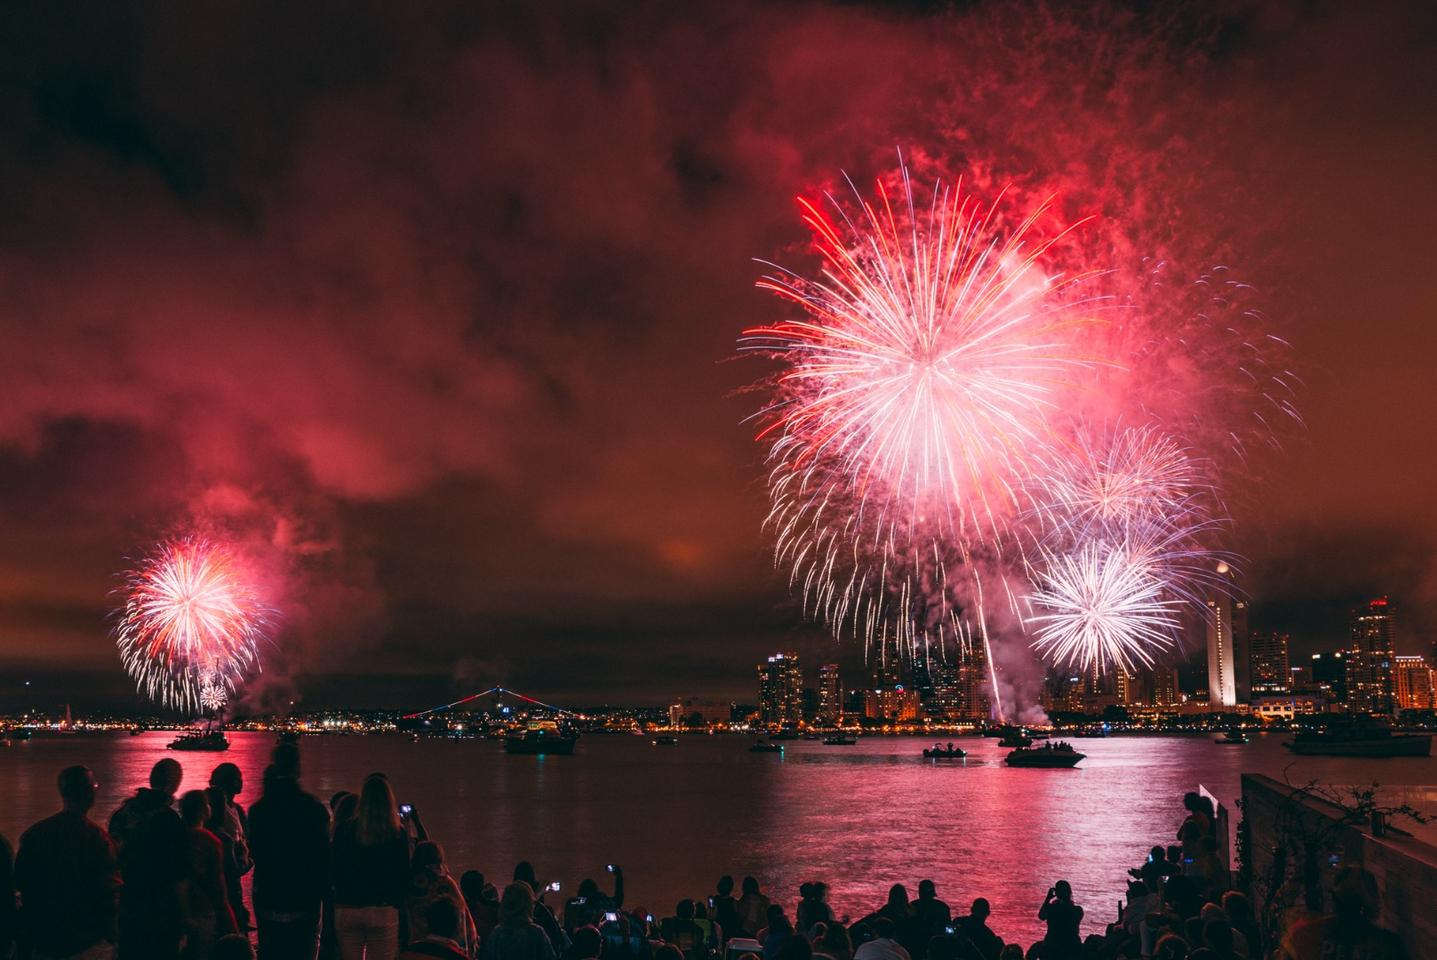 Fireworks photography: How to get creative and capture the